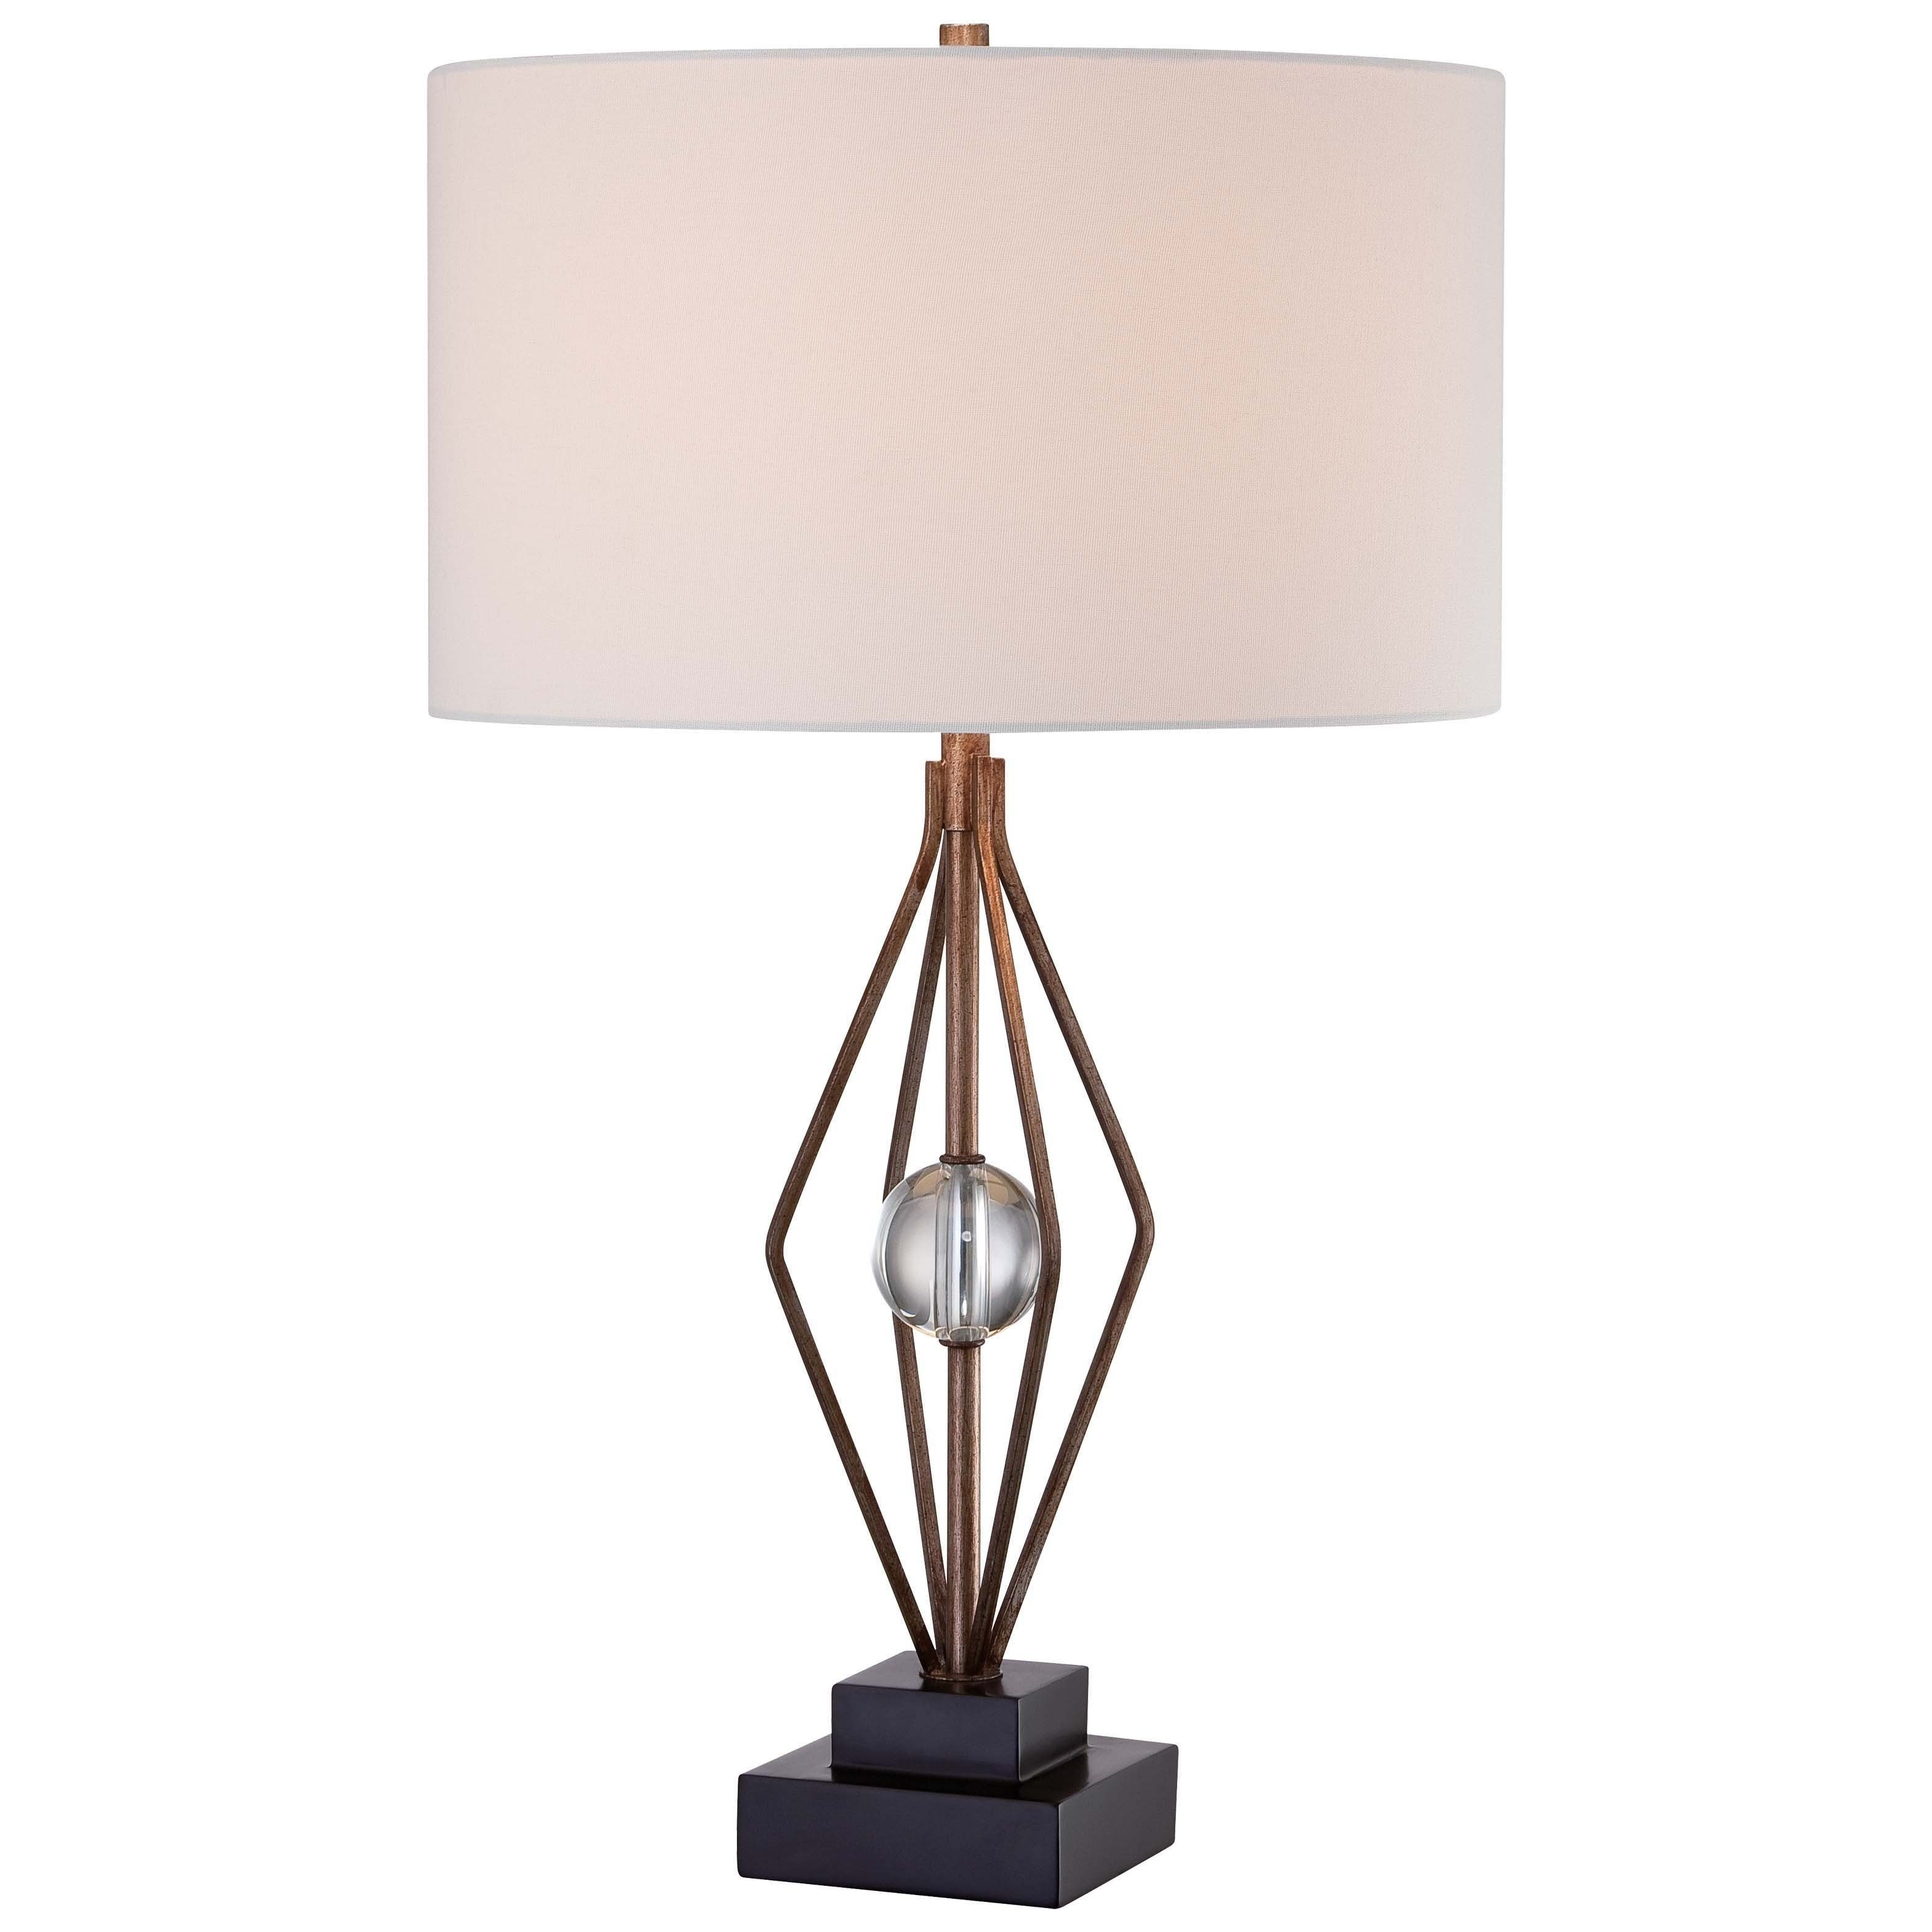 Minka lavery 1 light table lamp grey steel minka grey light minka lavery 1 light table lamp grey steel mozeypictures Image collections